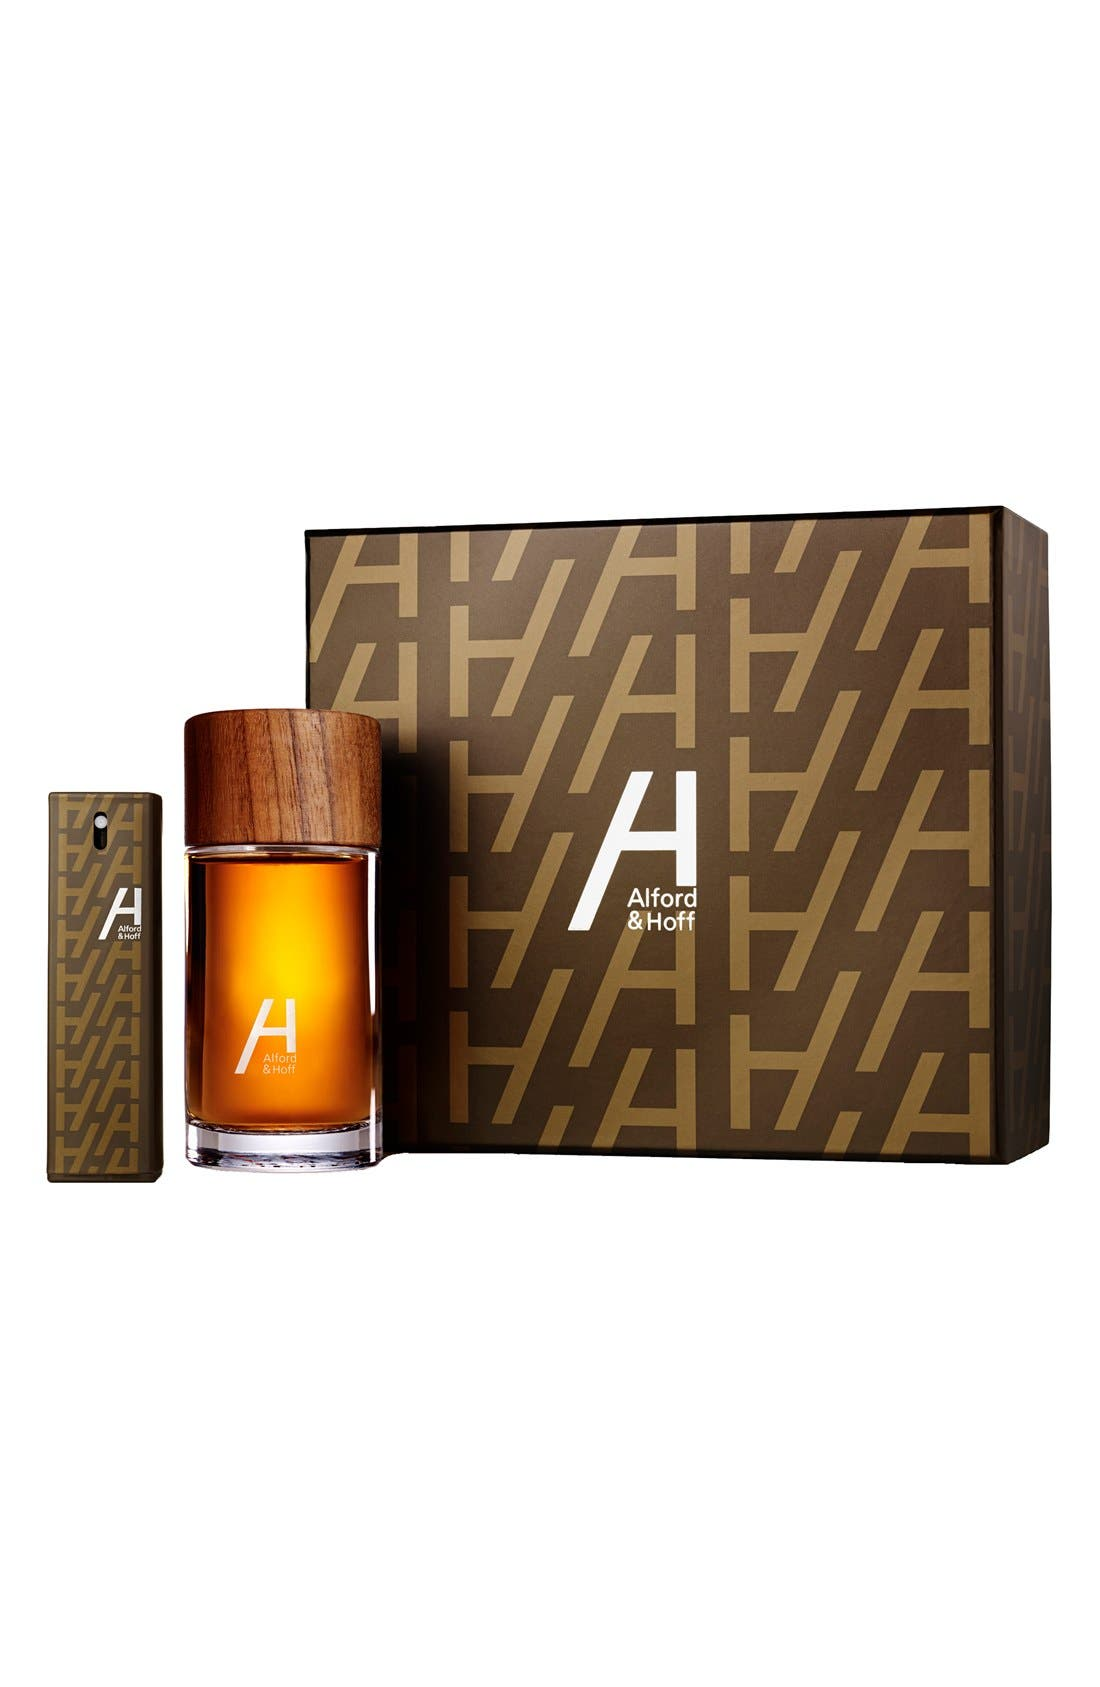 Alford & Hoff Eau de Toilette Signature Set ($132 Value)